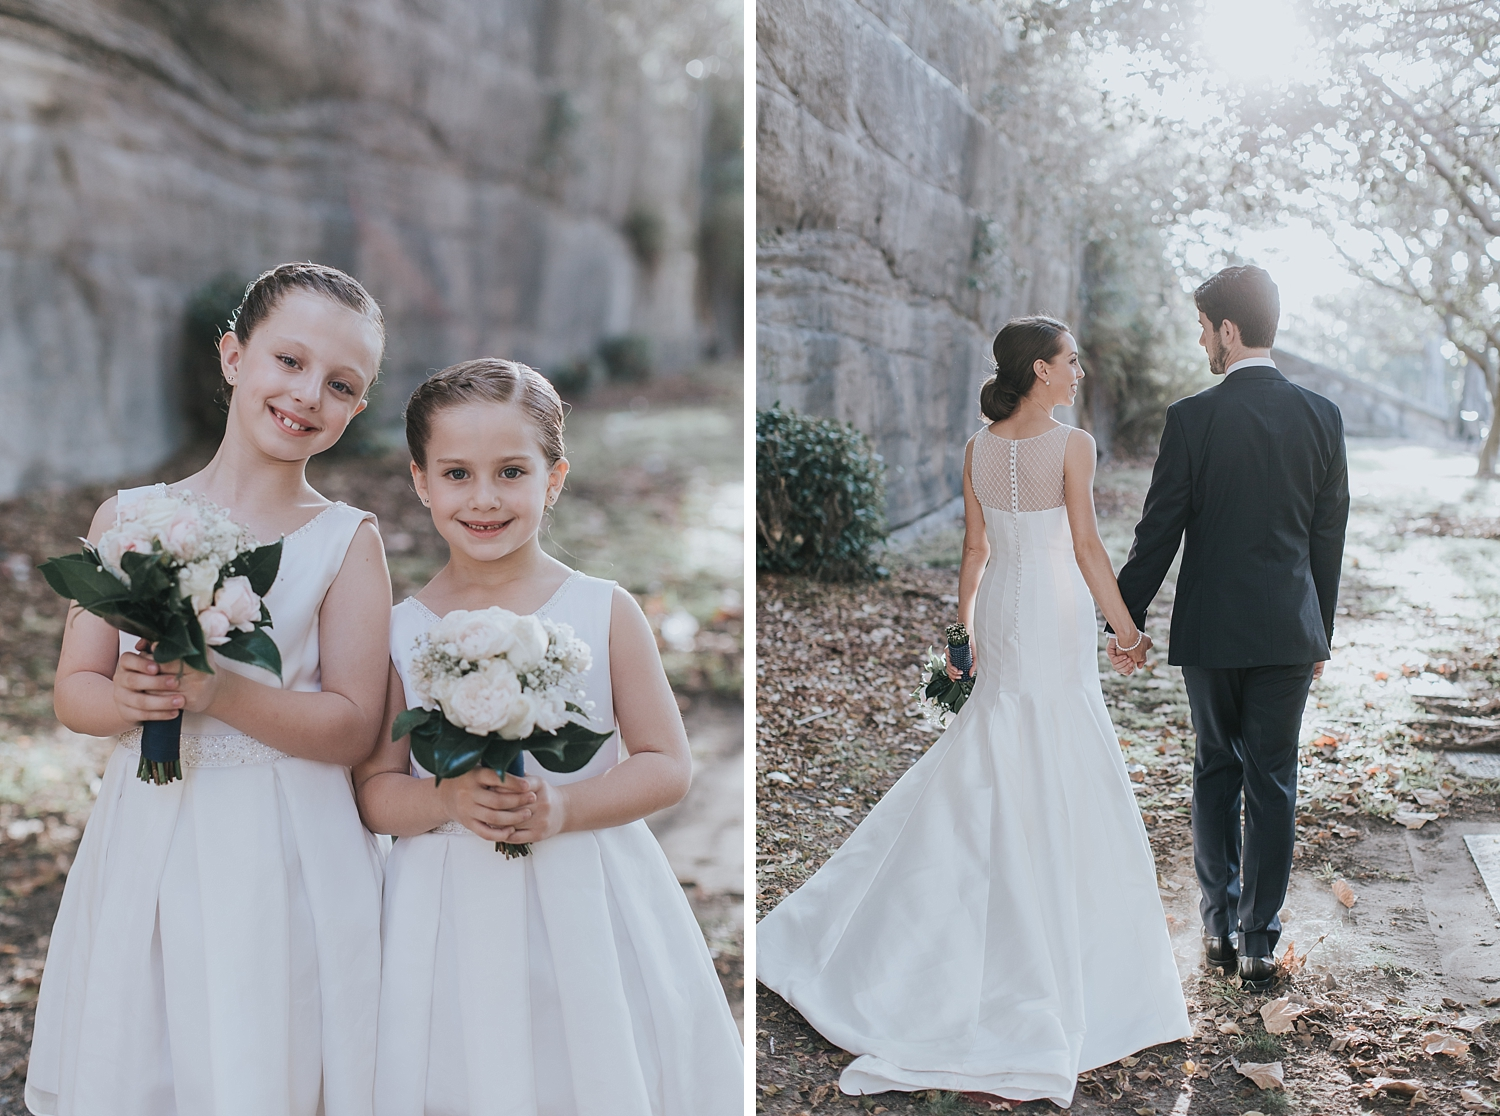 flowergirls and bride and groom